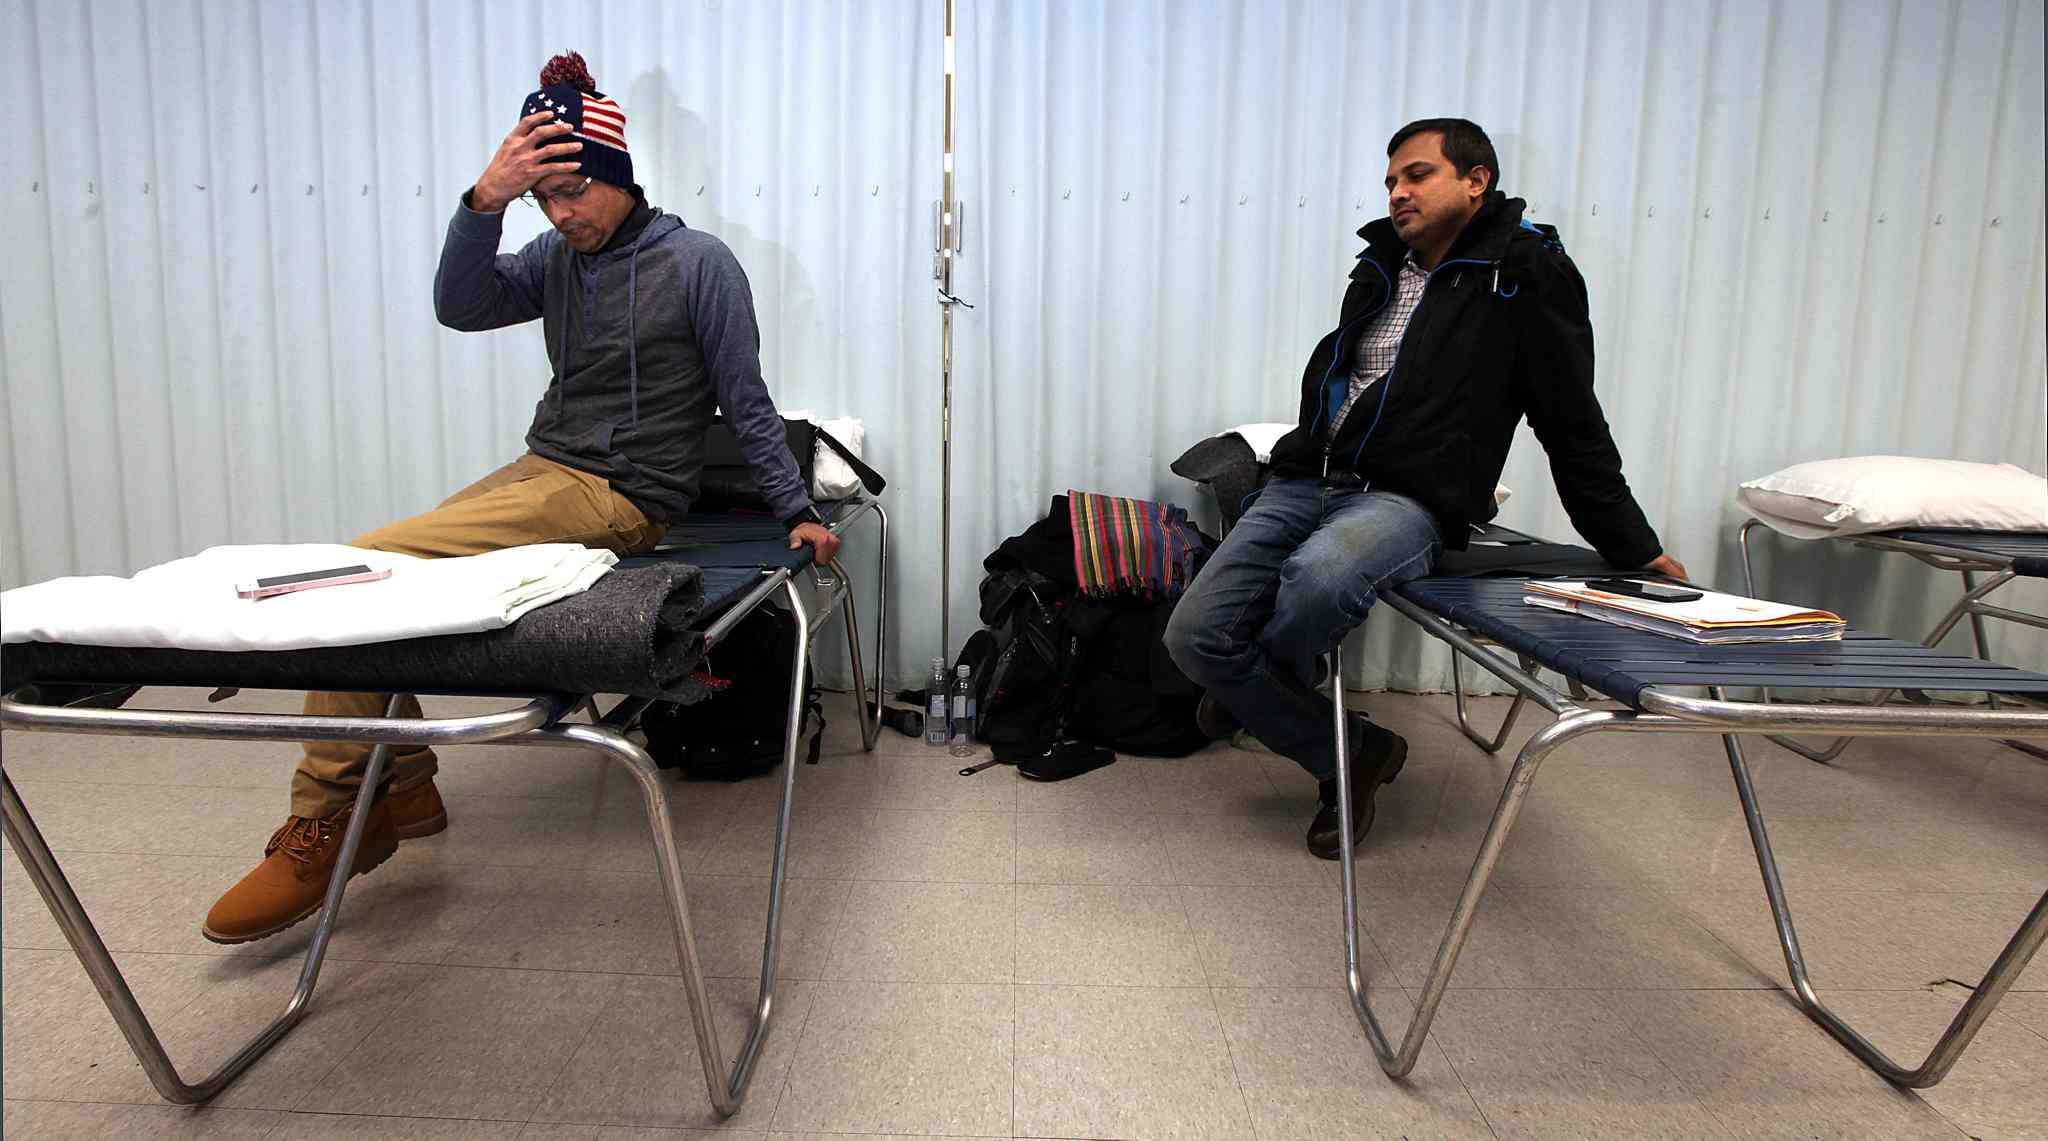 Shahadat  Hossain (left) and  Subir Barman spend time waiting at their Salvation Army overflow sleeping quarters, an area normally part of a dining room.